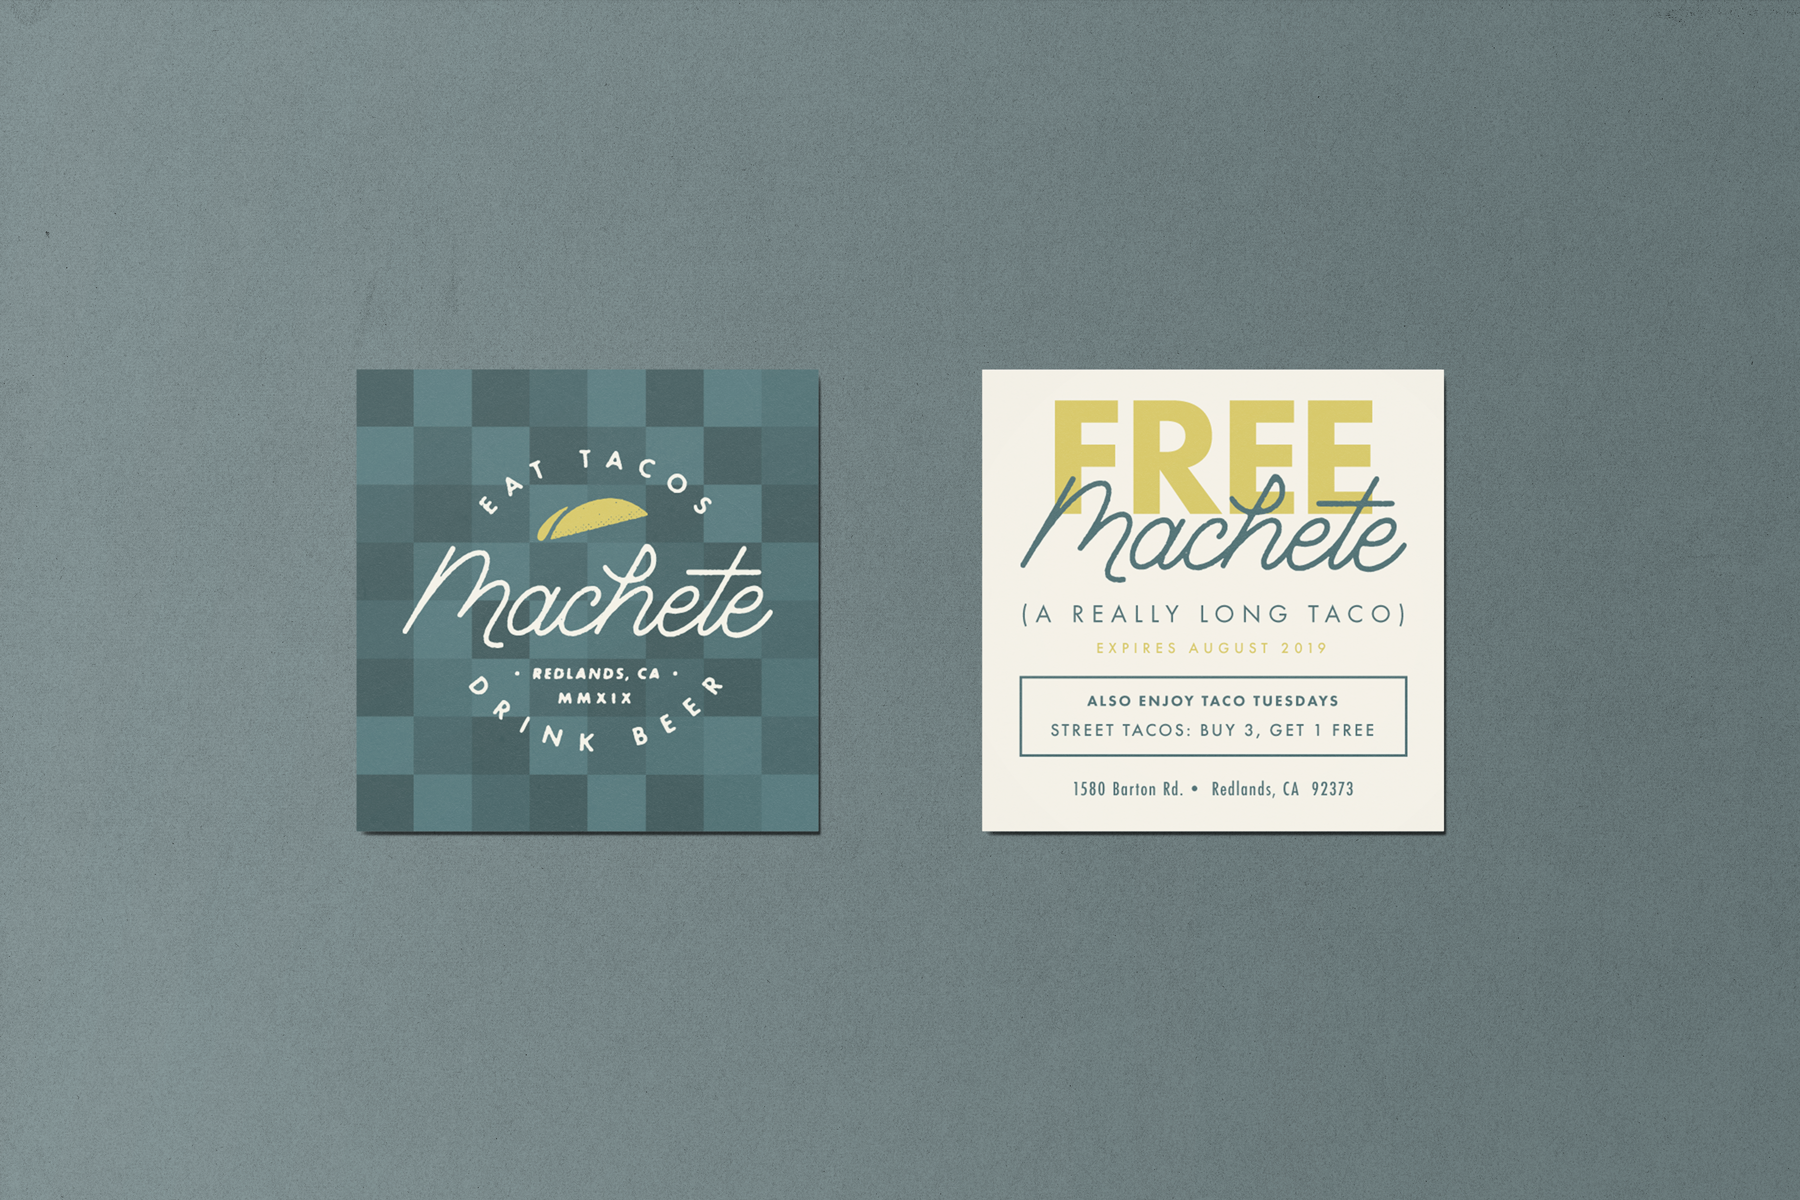 Marketing Collateral Coupon for Machete using checkered patterned and badge logo